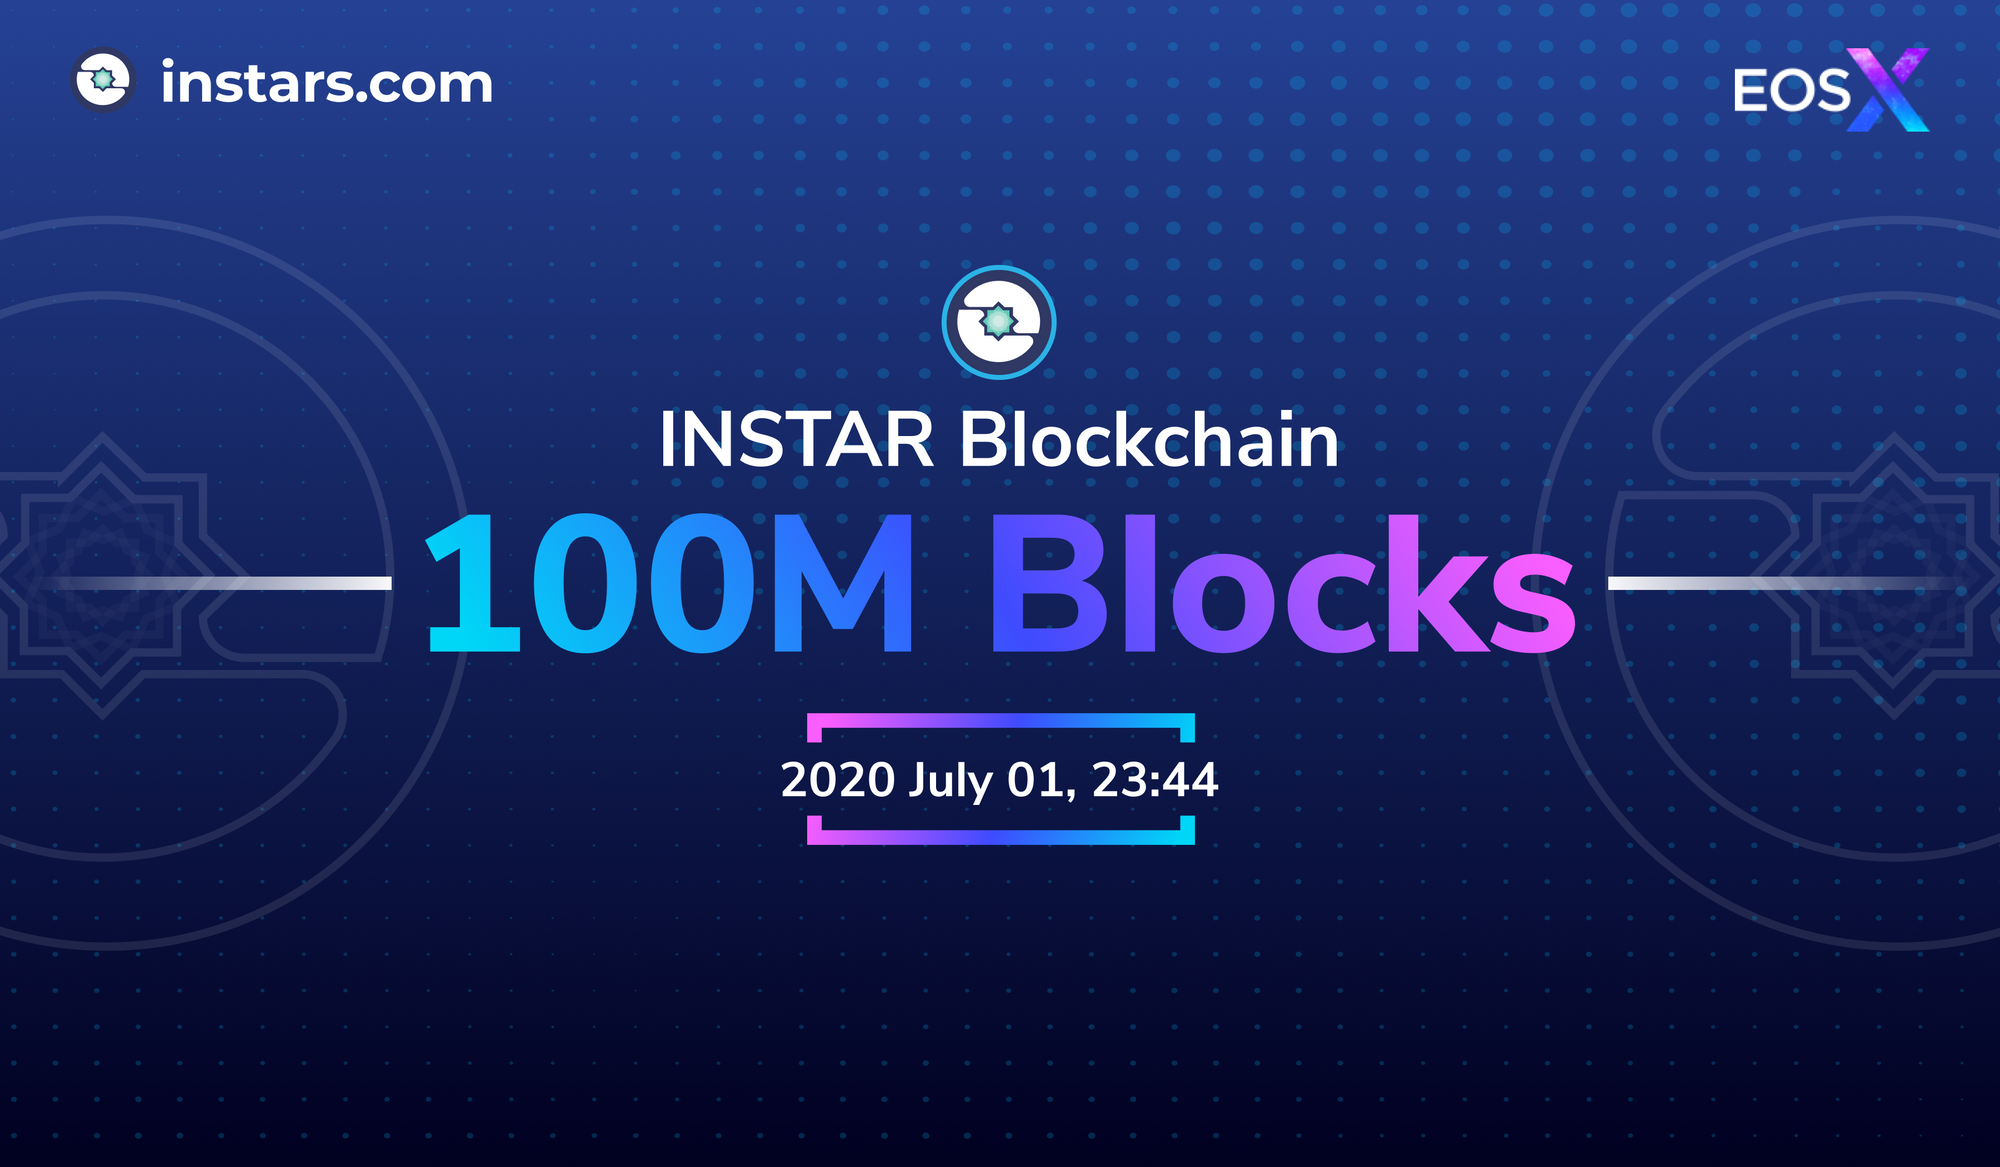 INSTAR Blockchain Surpasses 100M Blocks 💫